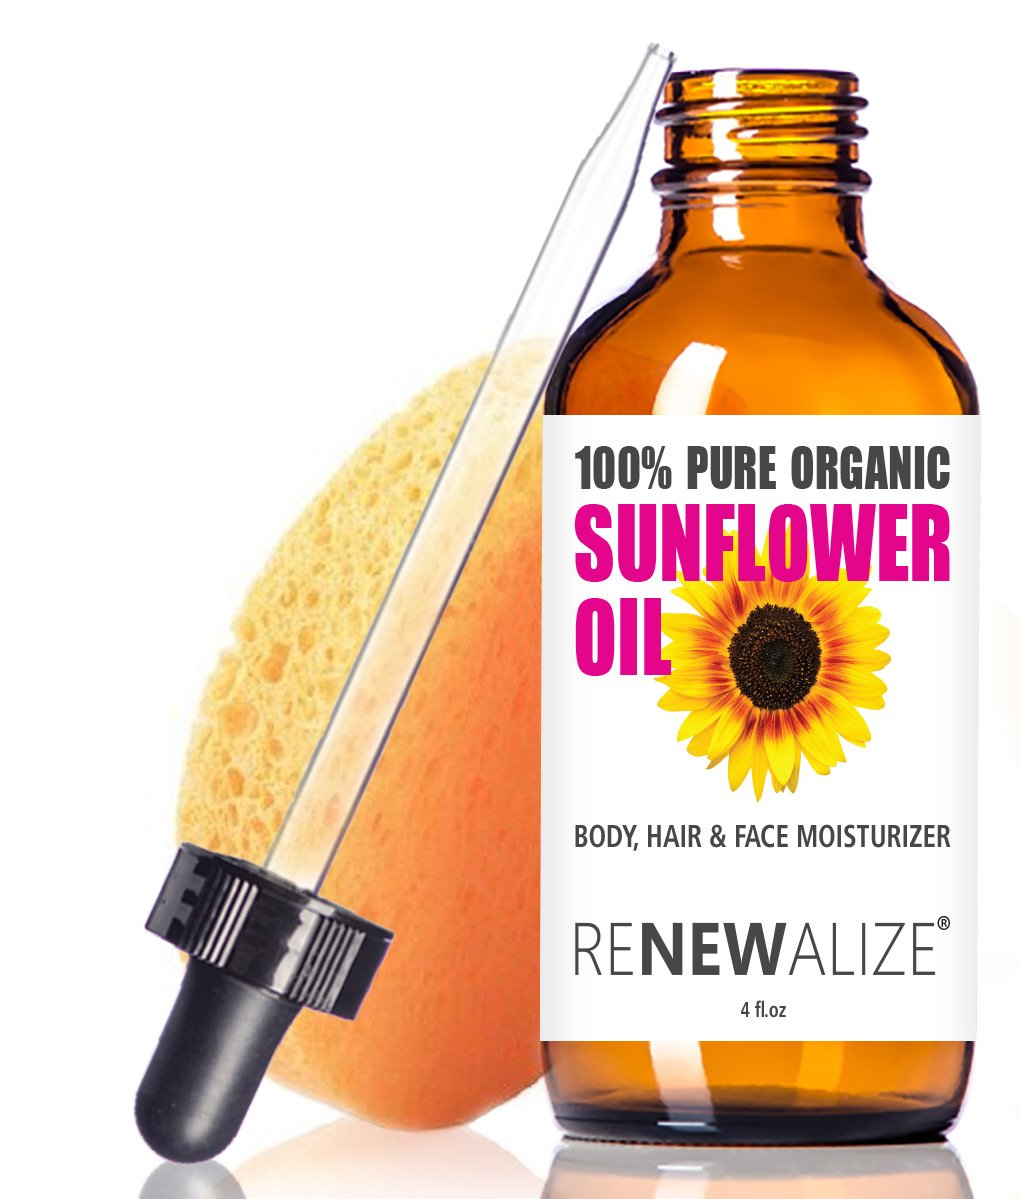 Organic Sunflower Seed Oil MOISTURIZER - 4oz Size | All Natural Cold Pressed 100 Pure - High Linoleic | Best for Acne Prone Oily Skin and Face | Daily or Nighttime Facial Regimen for Men & Women Renewalize